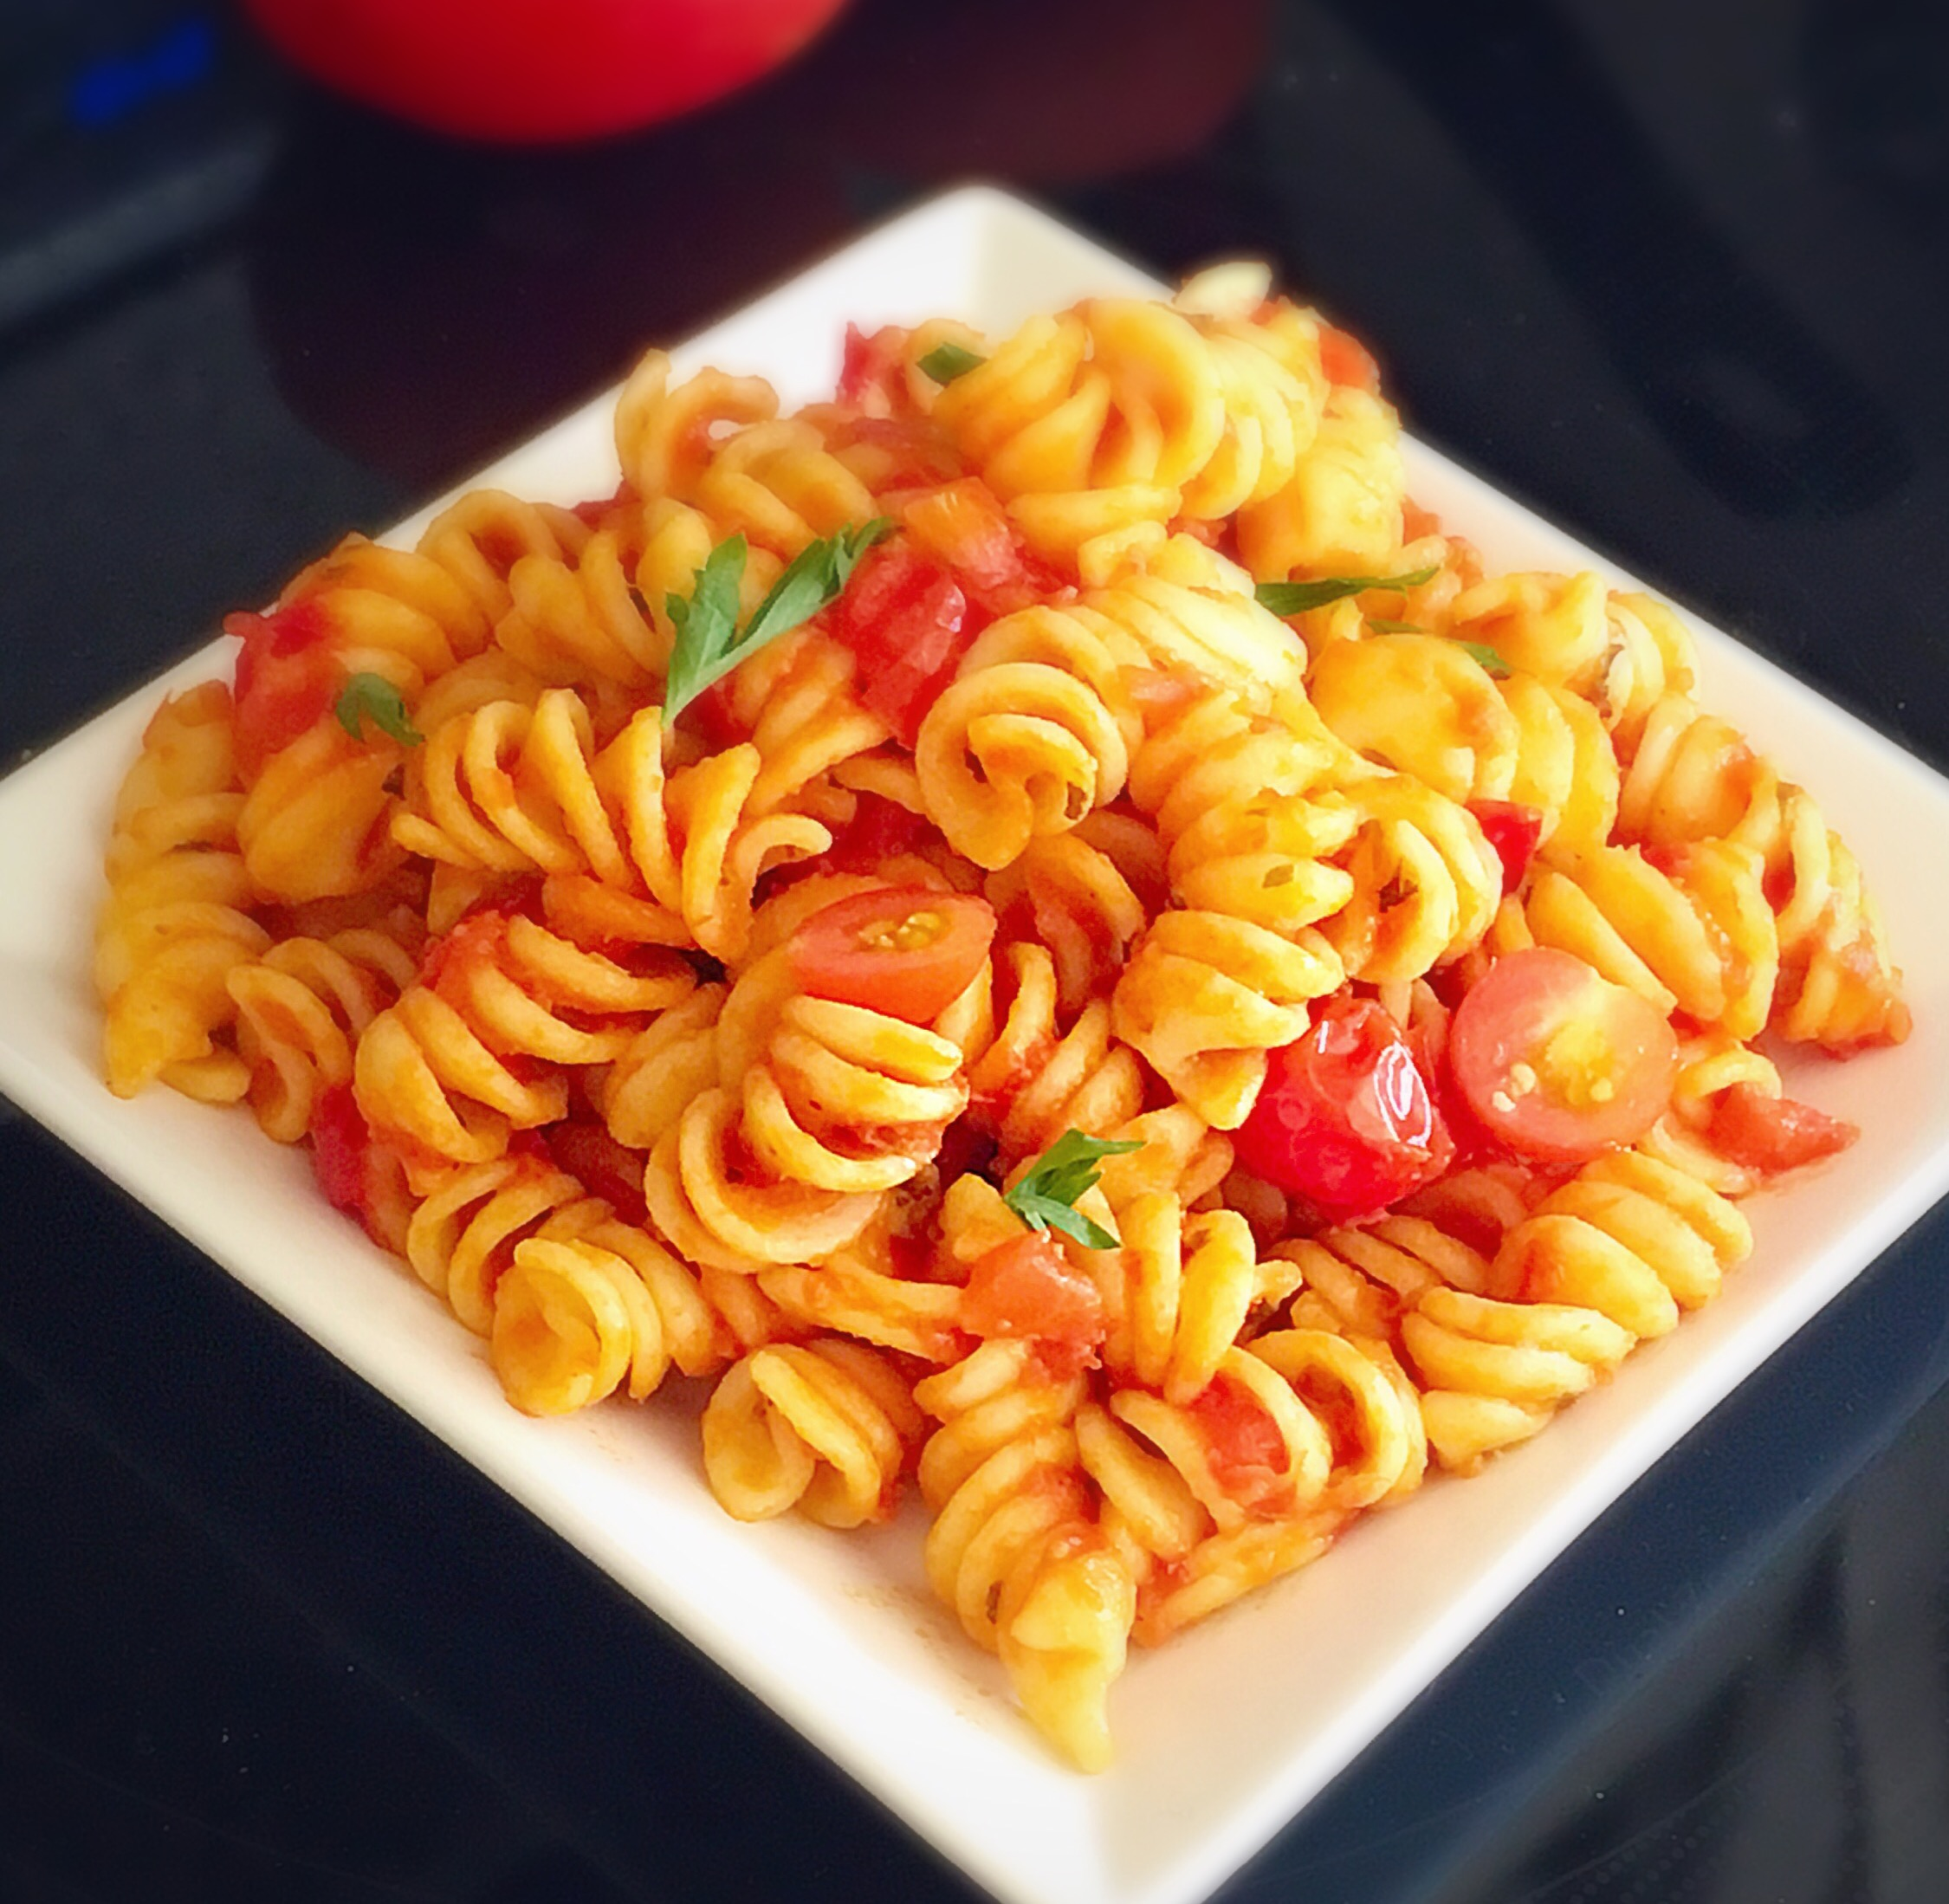 Tomato Pasta Recipe In Basil Garlic Sauce Sandhya S Recipes